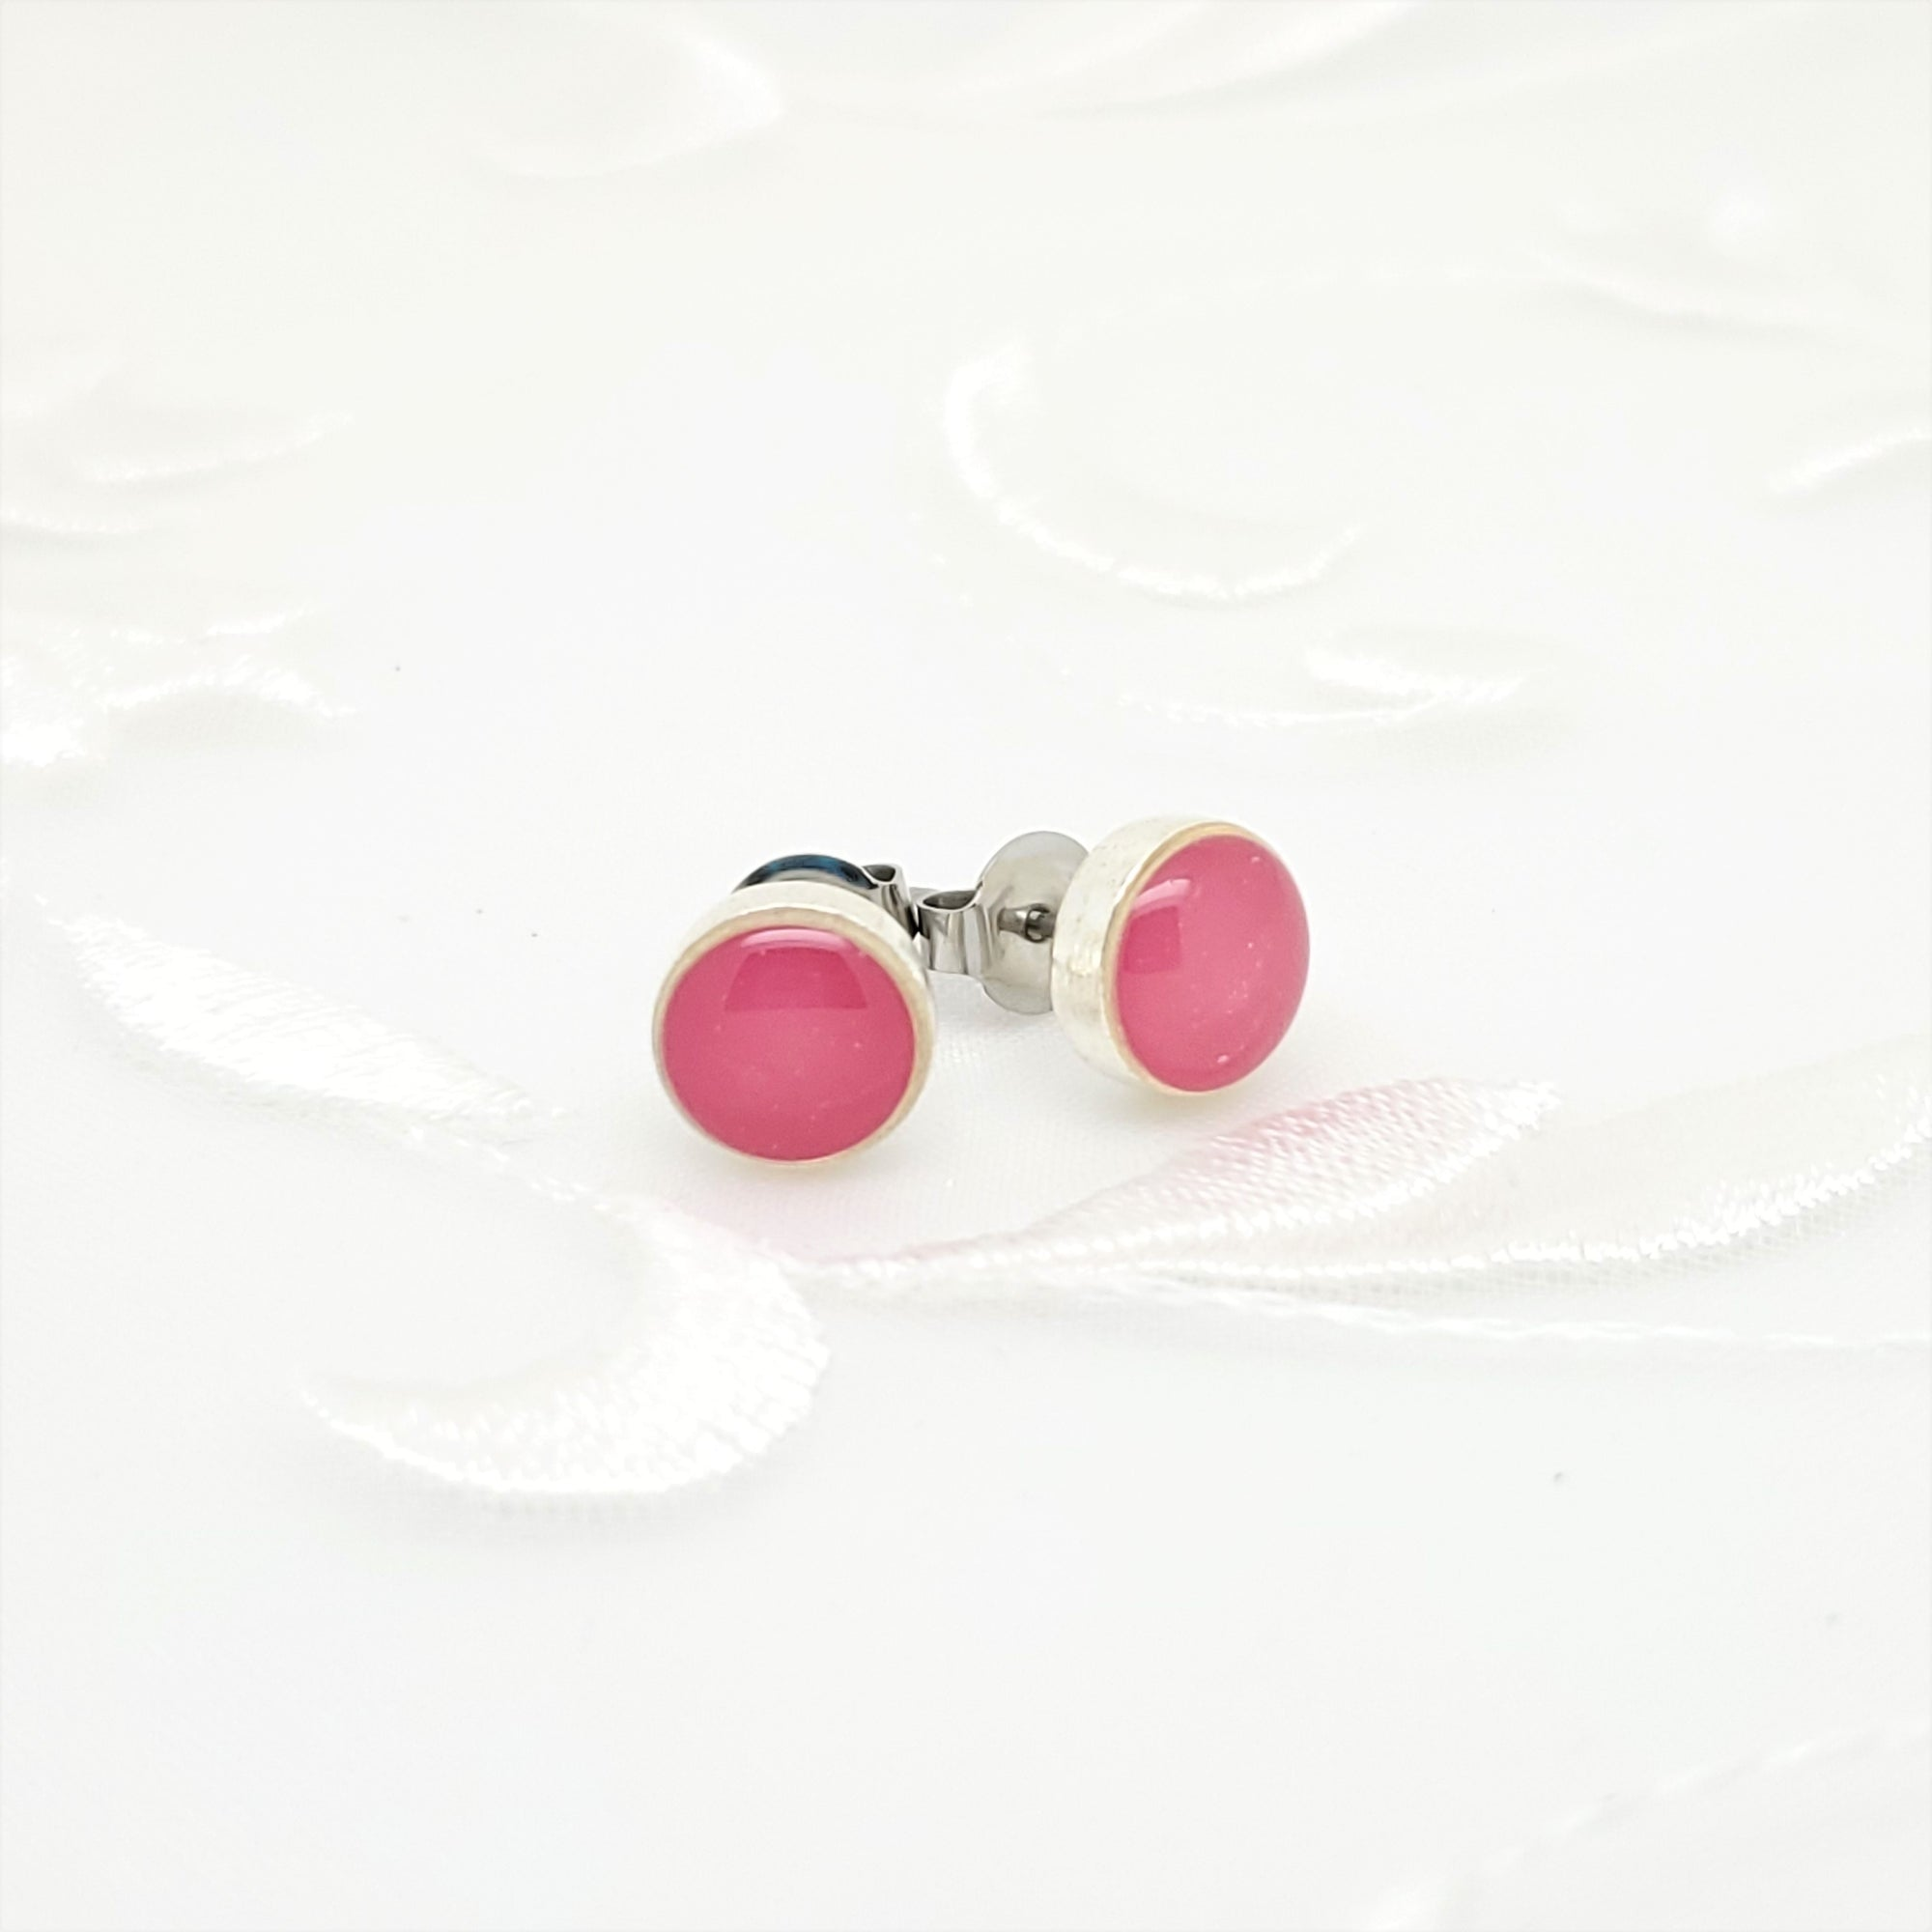 Antique Silver Round Stud Earrings with Pink Resin